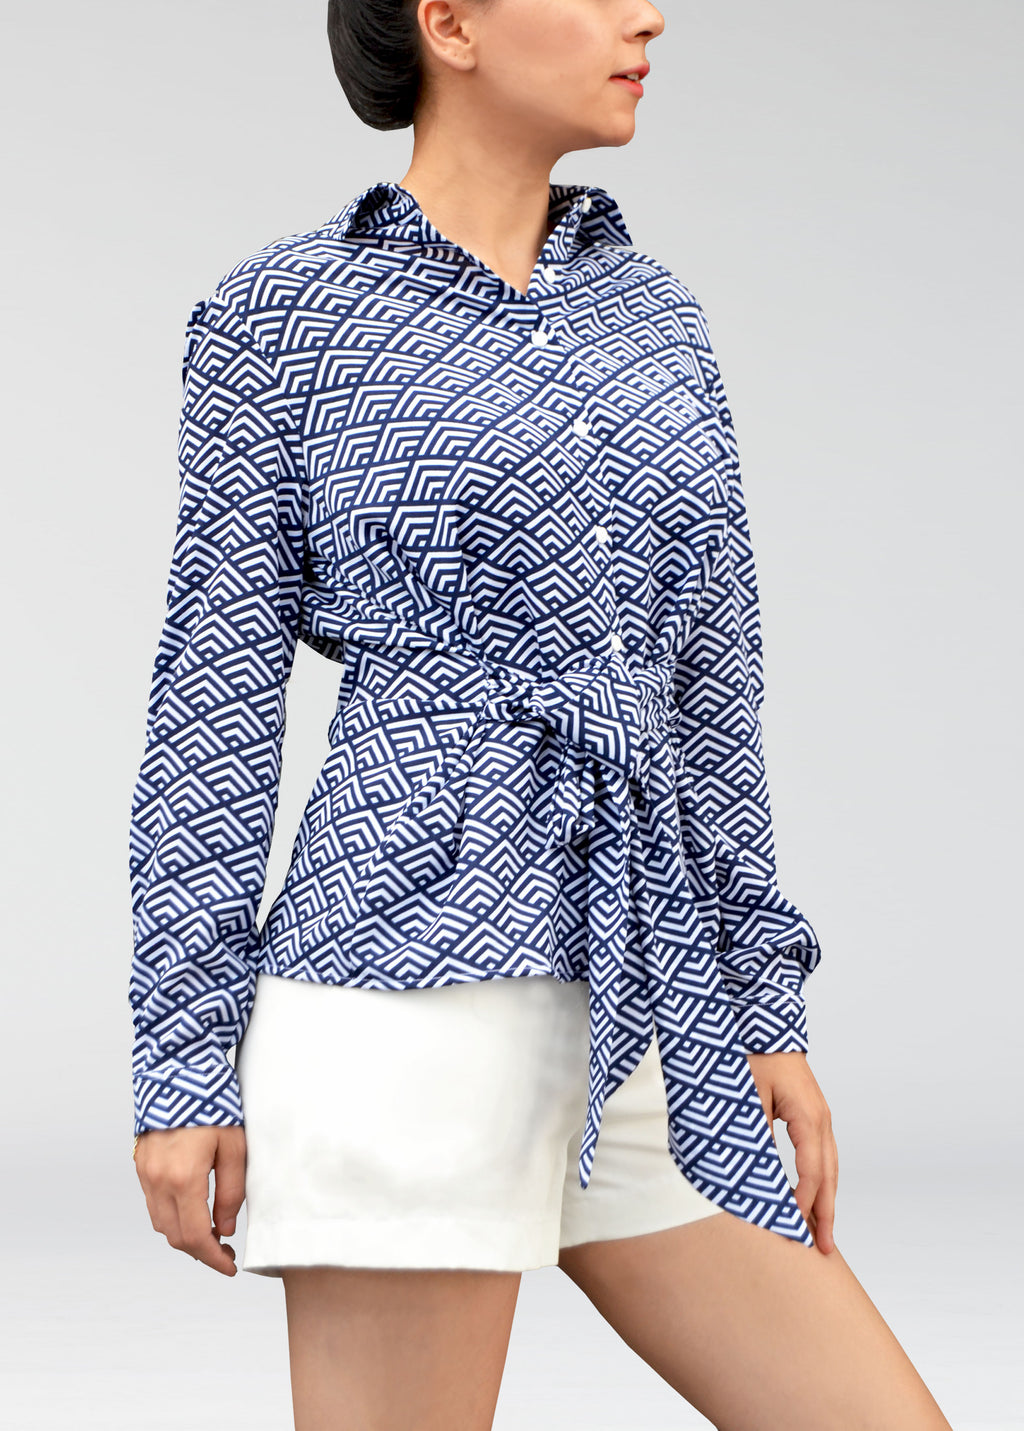 Alexie printed shirt